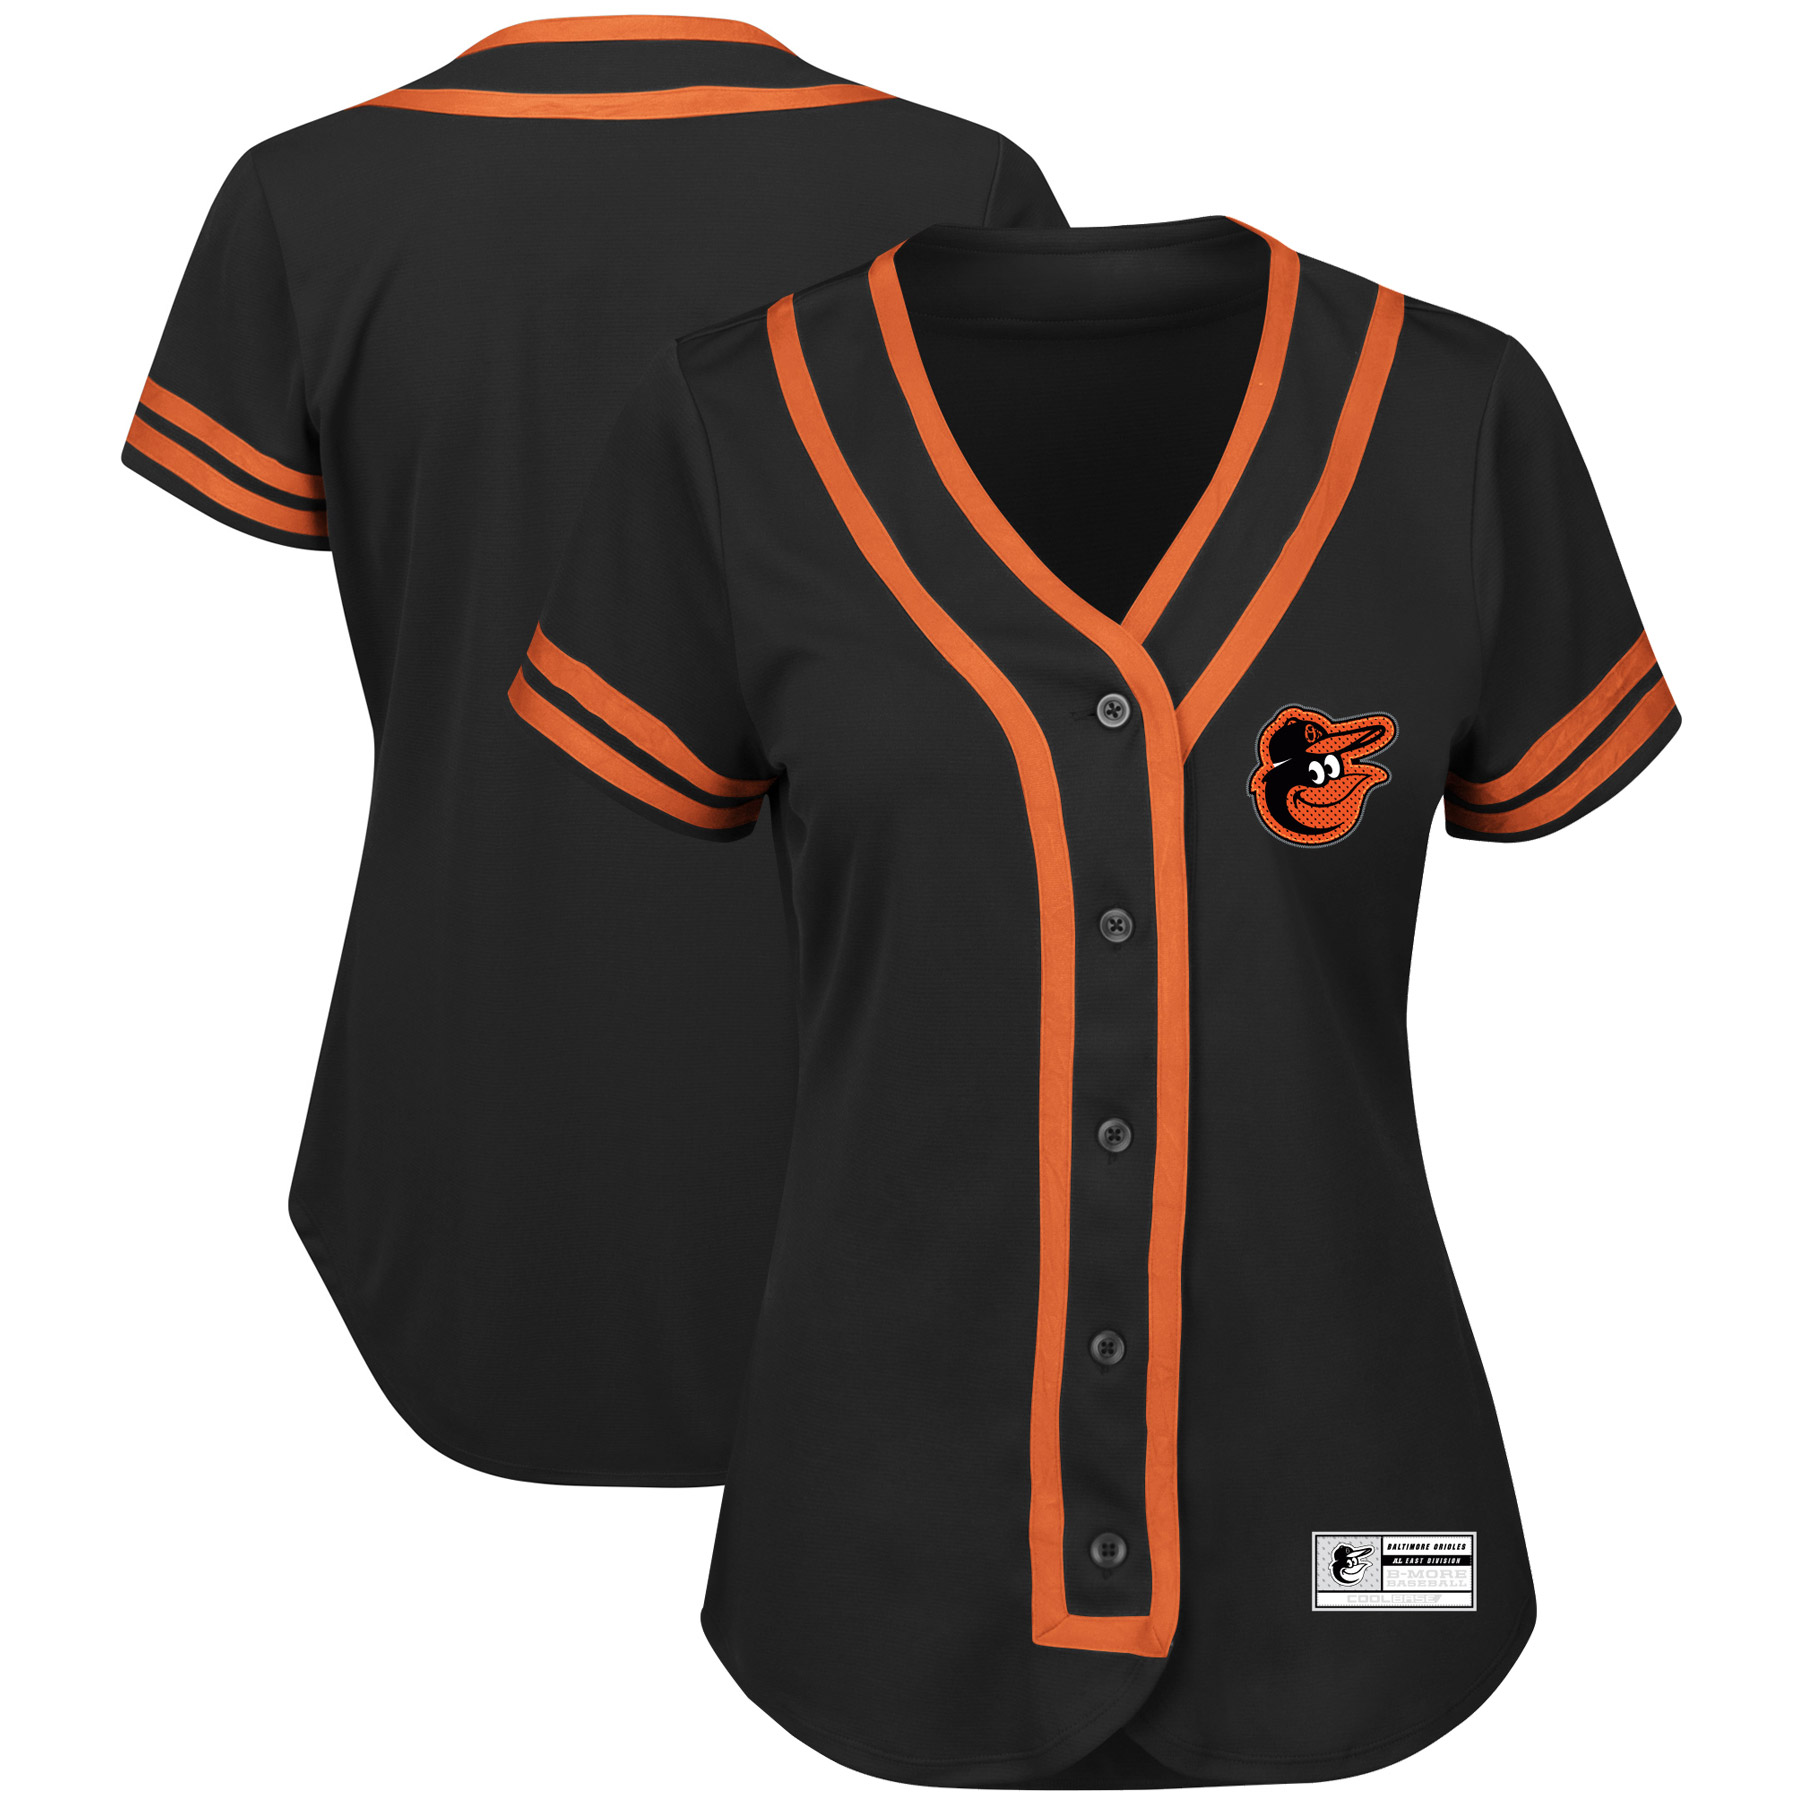 Baltimore Orioles Majestic Women's Fashion Absolute Victory Cool Base Team Jersey Black Orange by MAJESTIC LSG